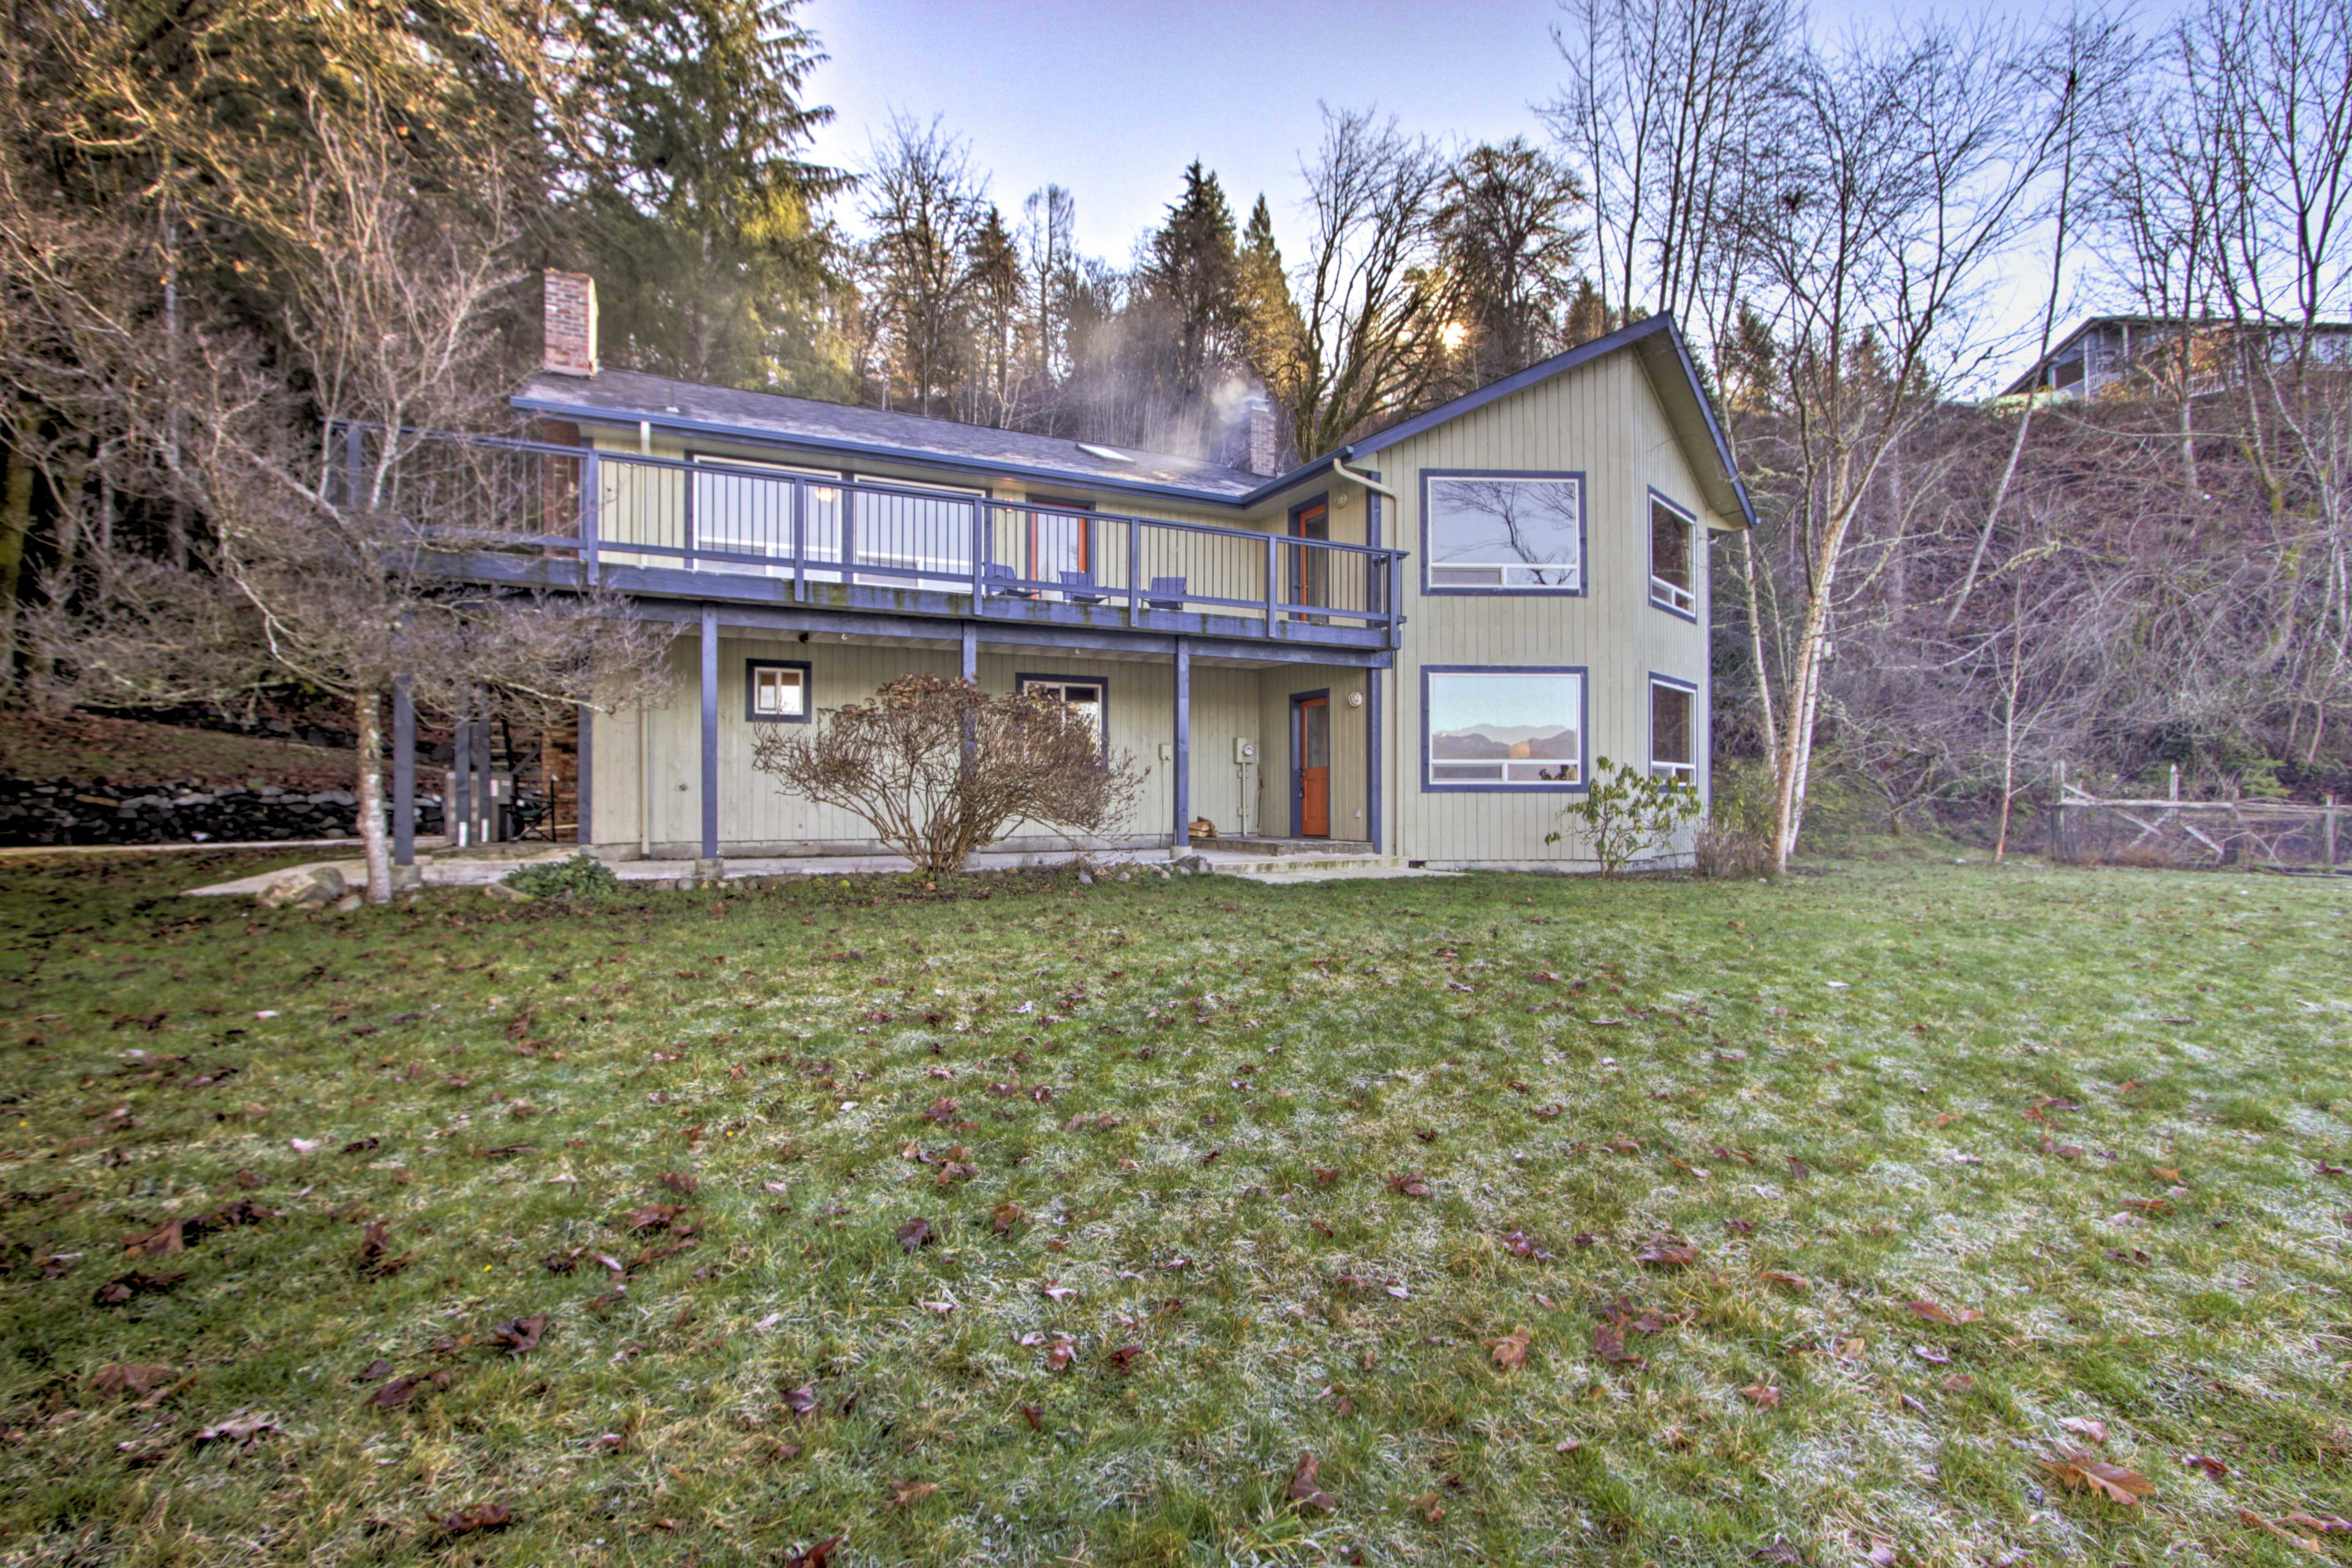 The spacious home boasts 3 bedrooms, 3.5 baths, a deck and covered patio.